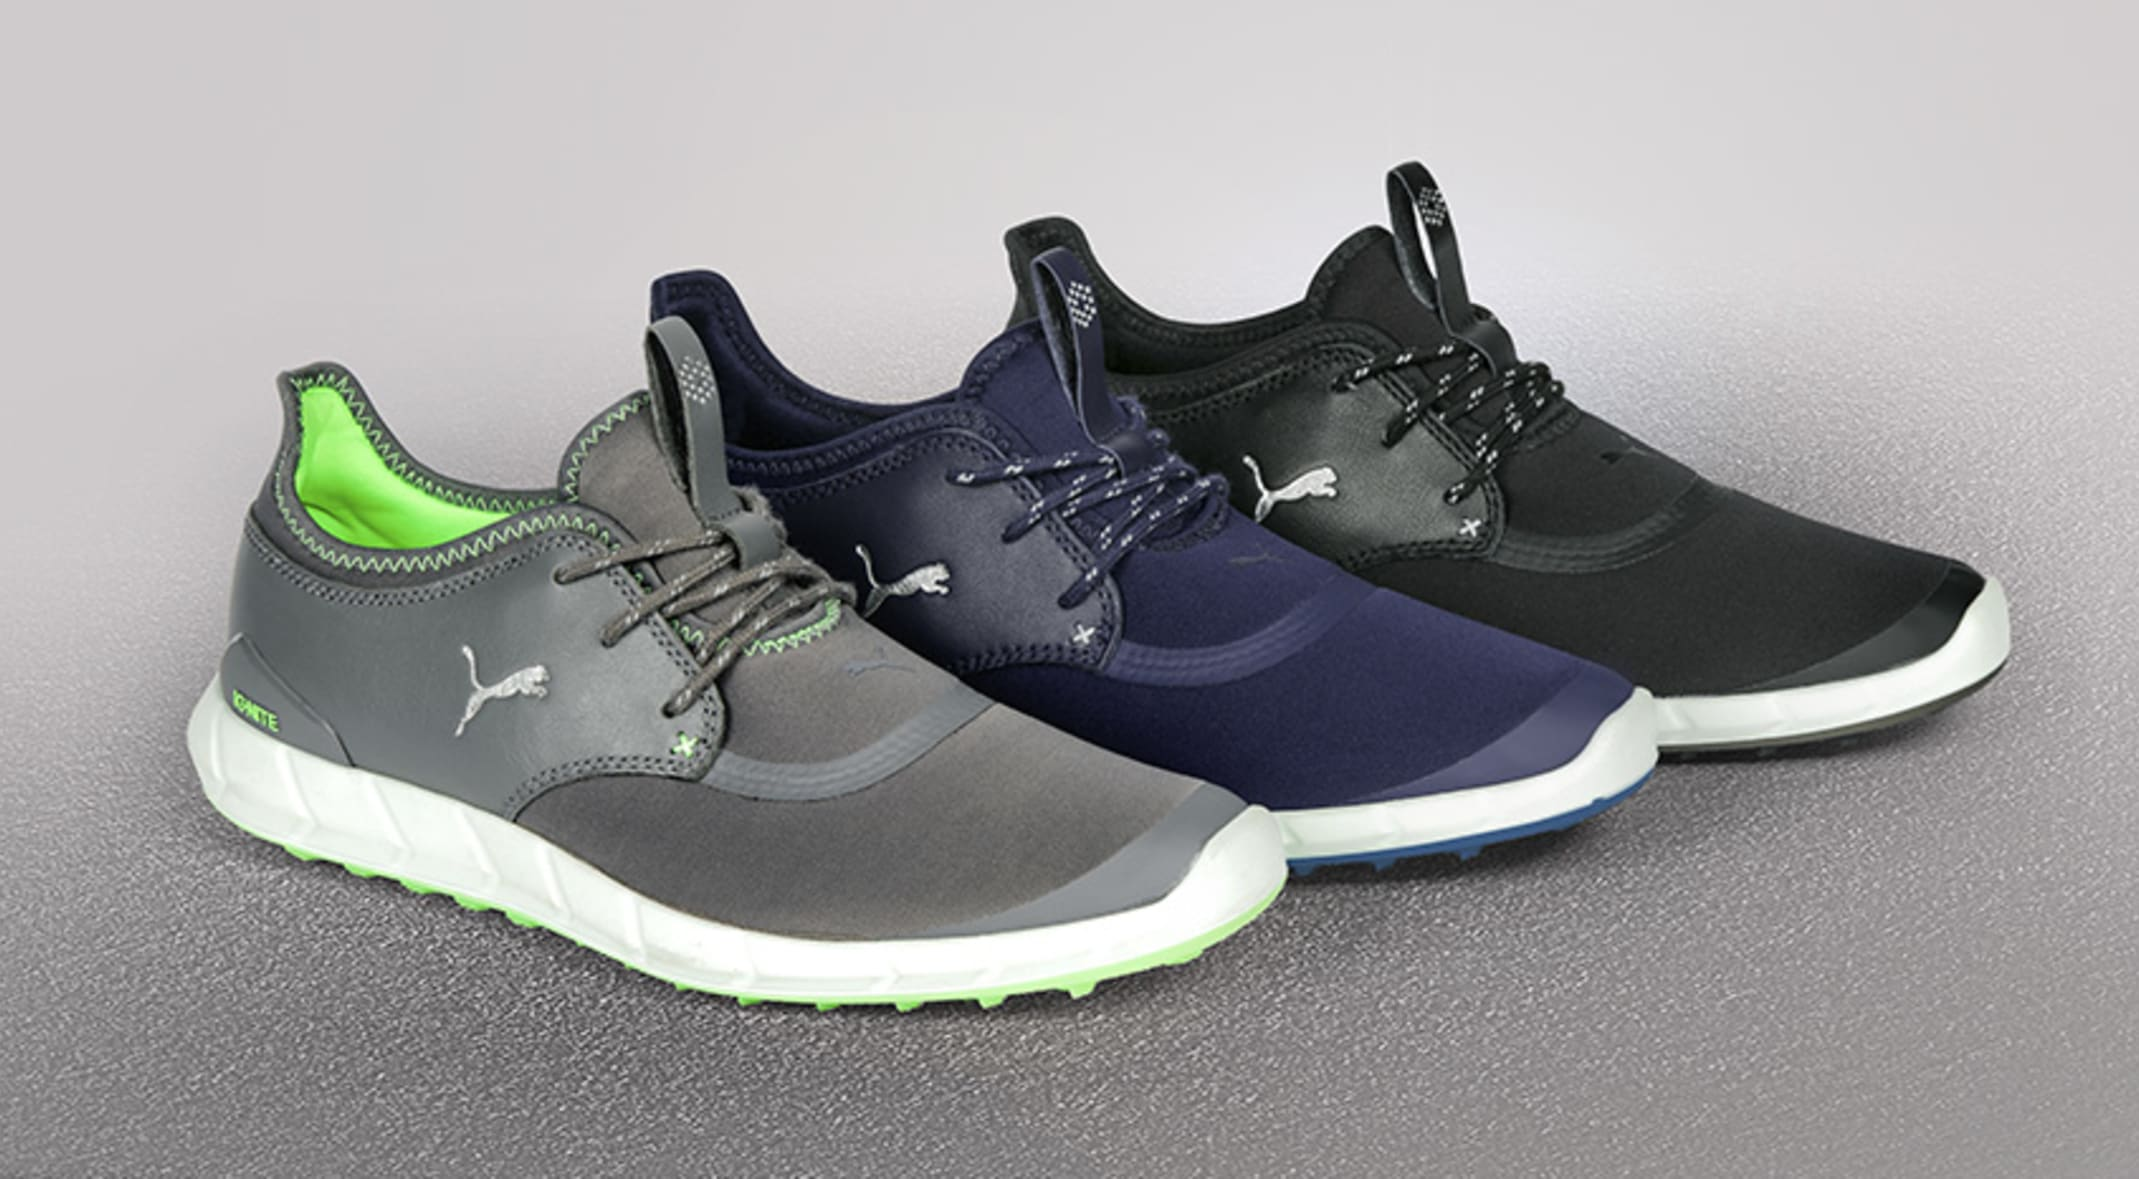 new product 1fadc be60a Puma s latest team member, Bryson DeChambeau, has been lacing up in the new  IGNITE